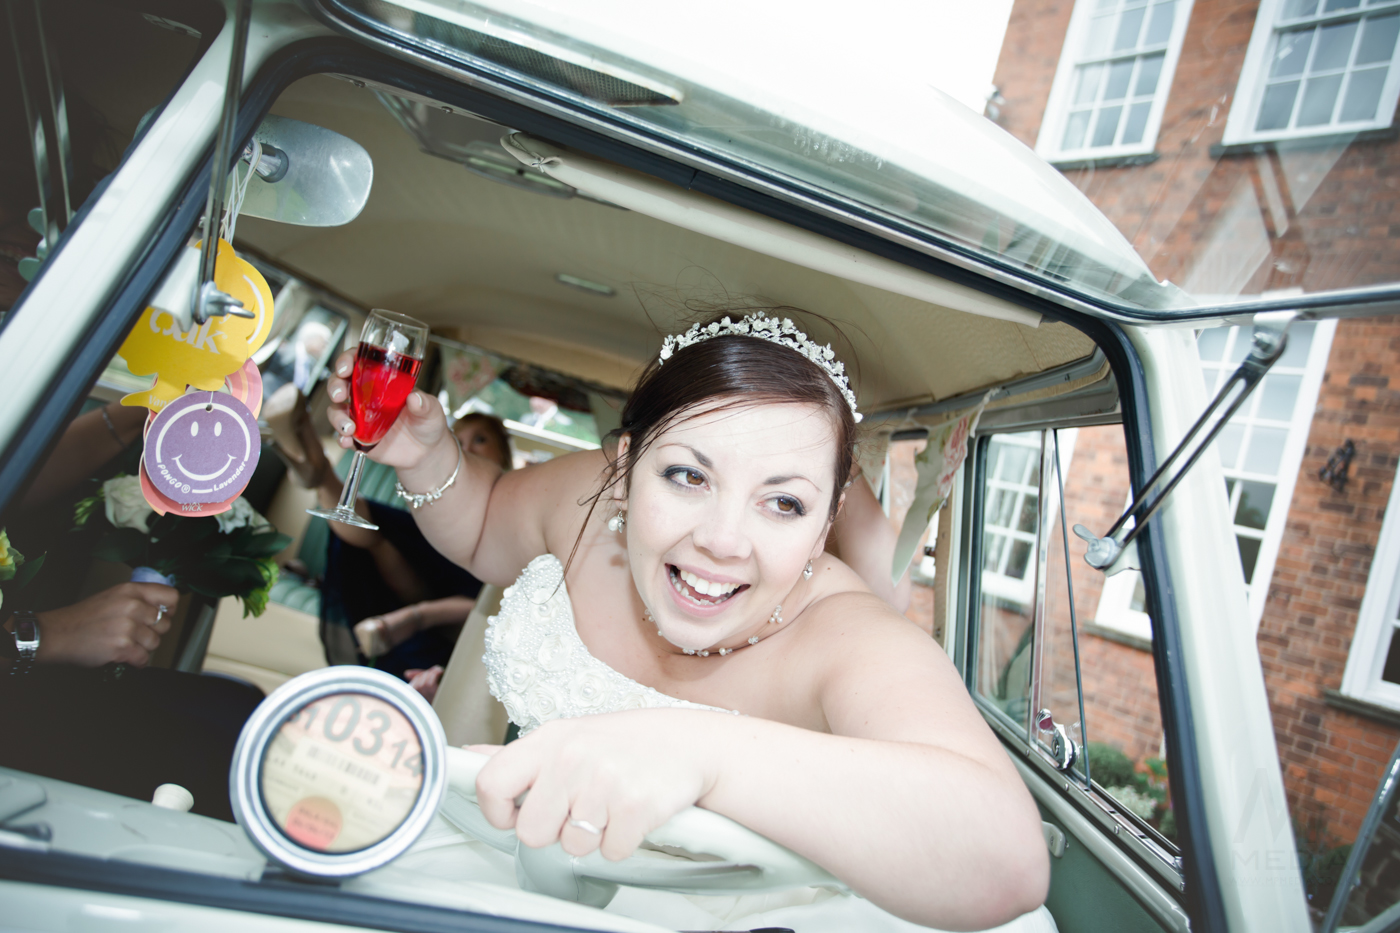 368 - Chris and Natalies Wedding (MAIN) - DO NOT SHARE THIS IMAGES ONLINE -0688.JPG